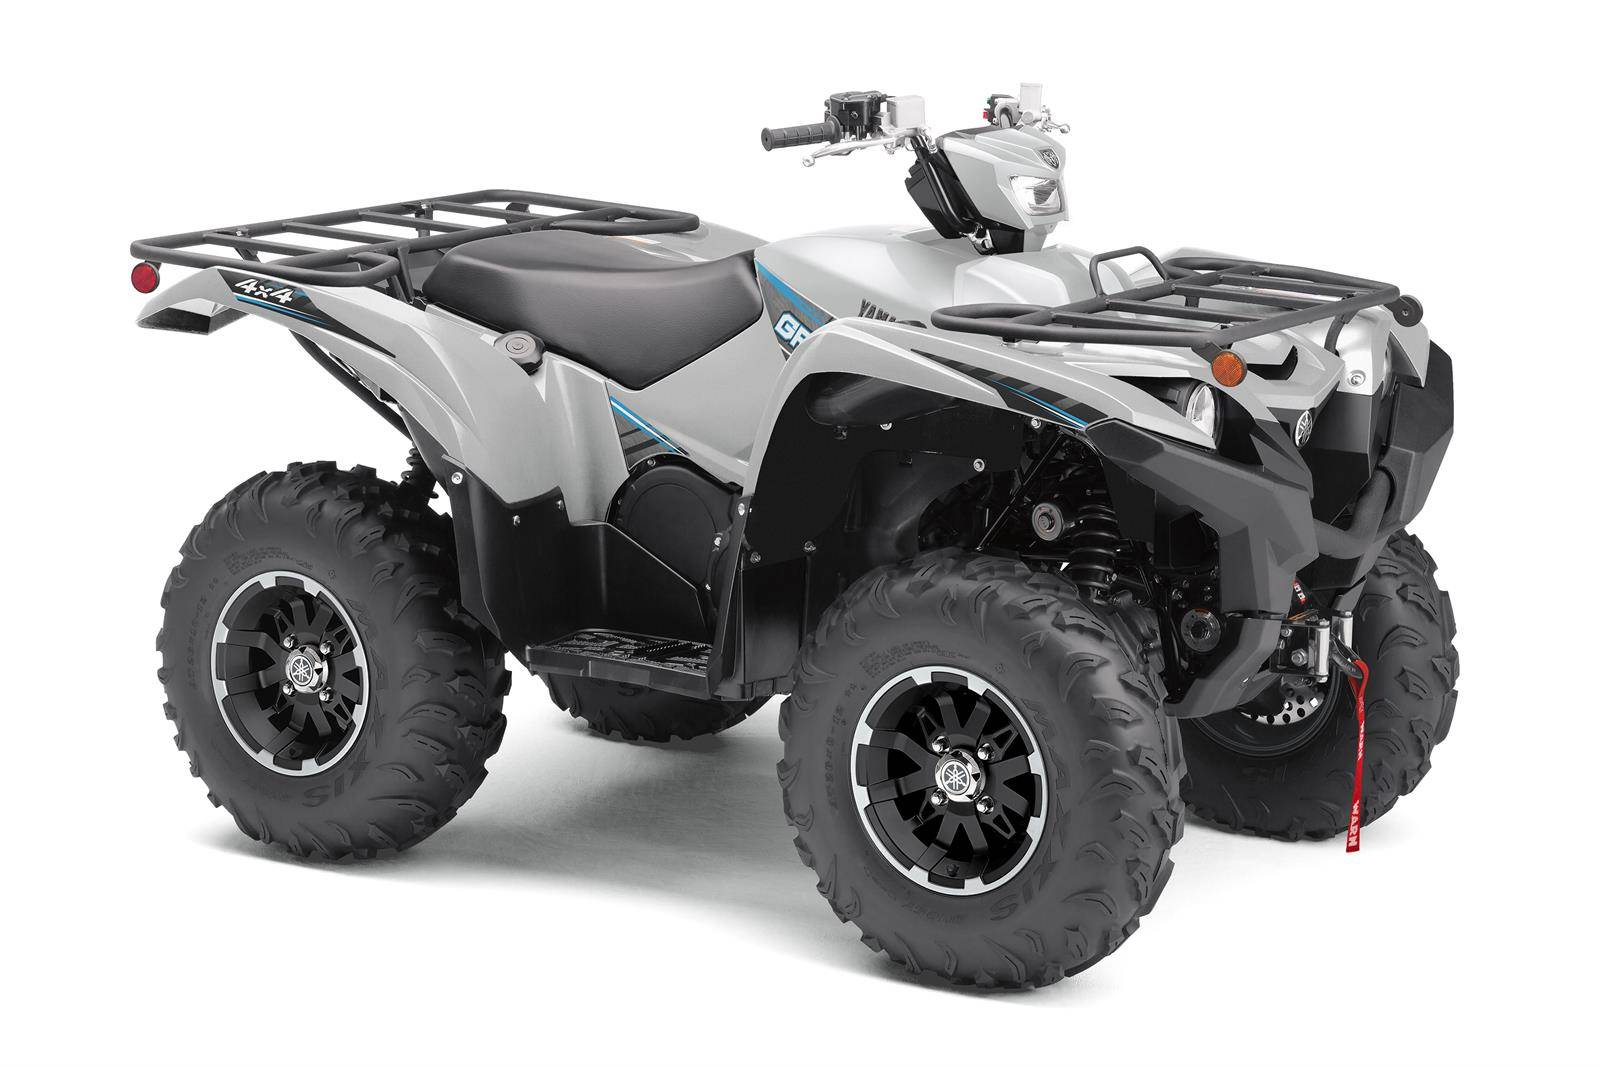 2020 Yamaha GRIZZLY 700 SE in Trego, Wisconsin